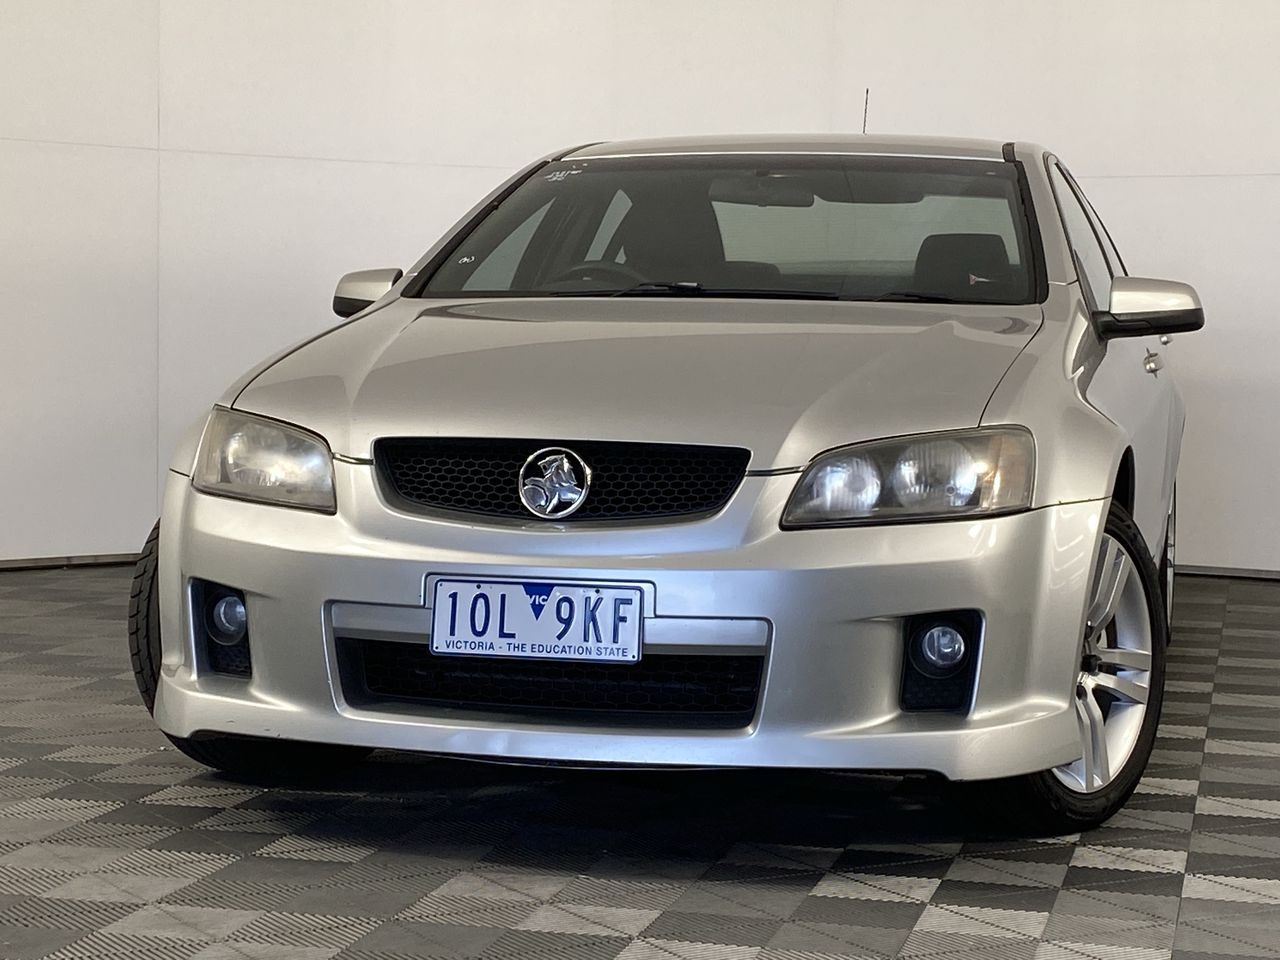 2007 Holden Commodore SV6 VE Automatic Sedan